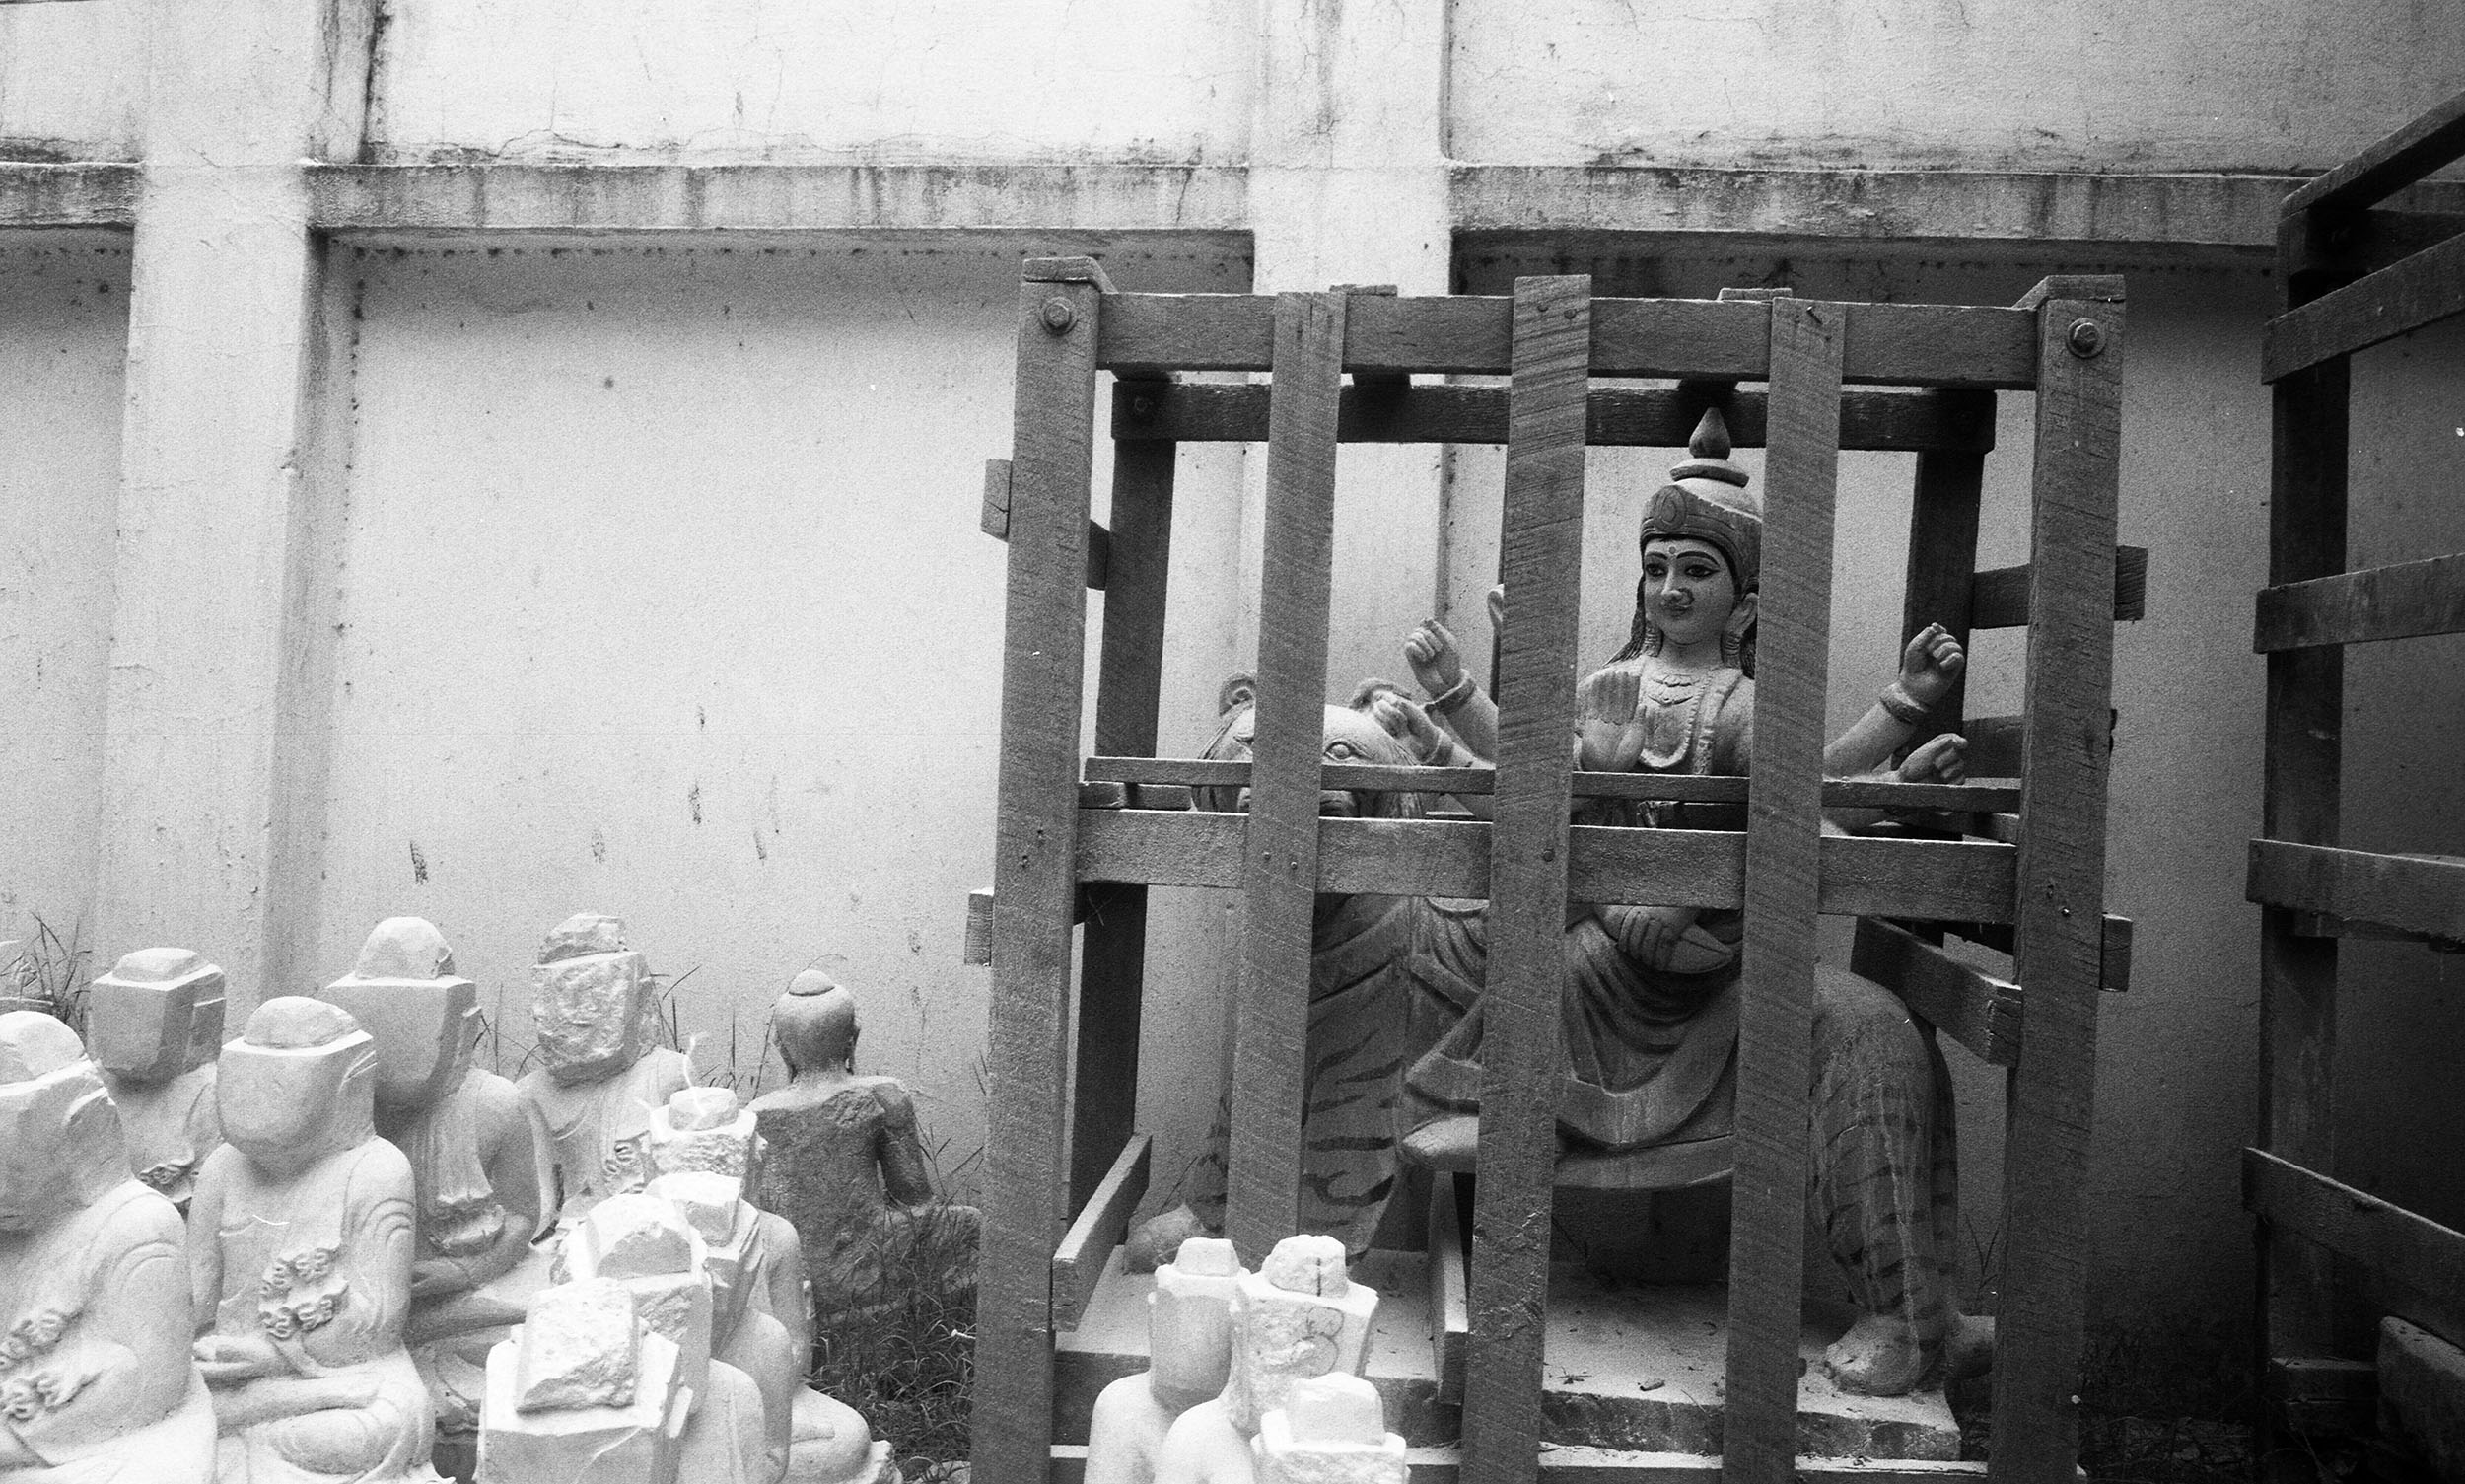 Religious sculptures ready for sale in Mandalay.